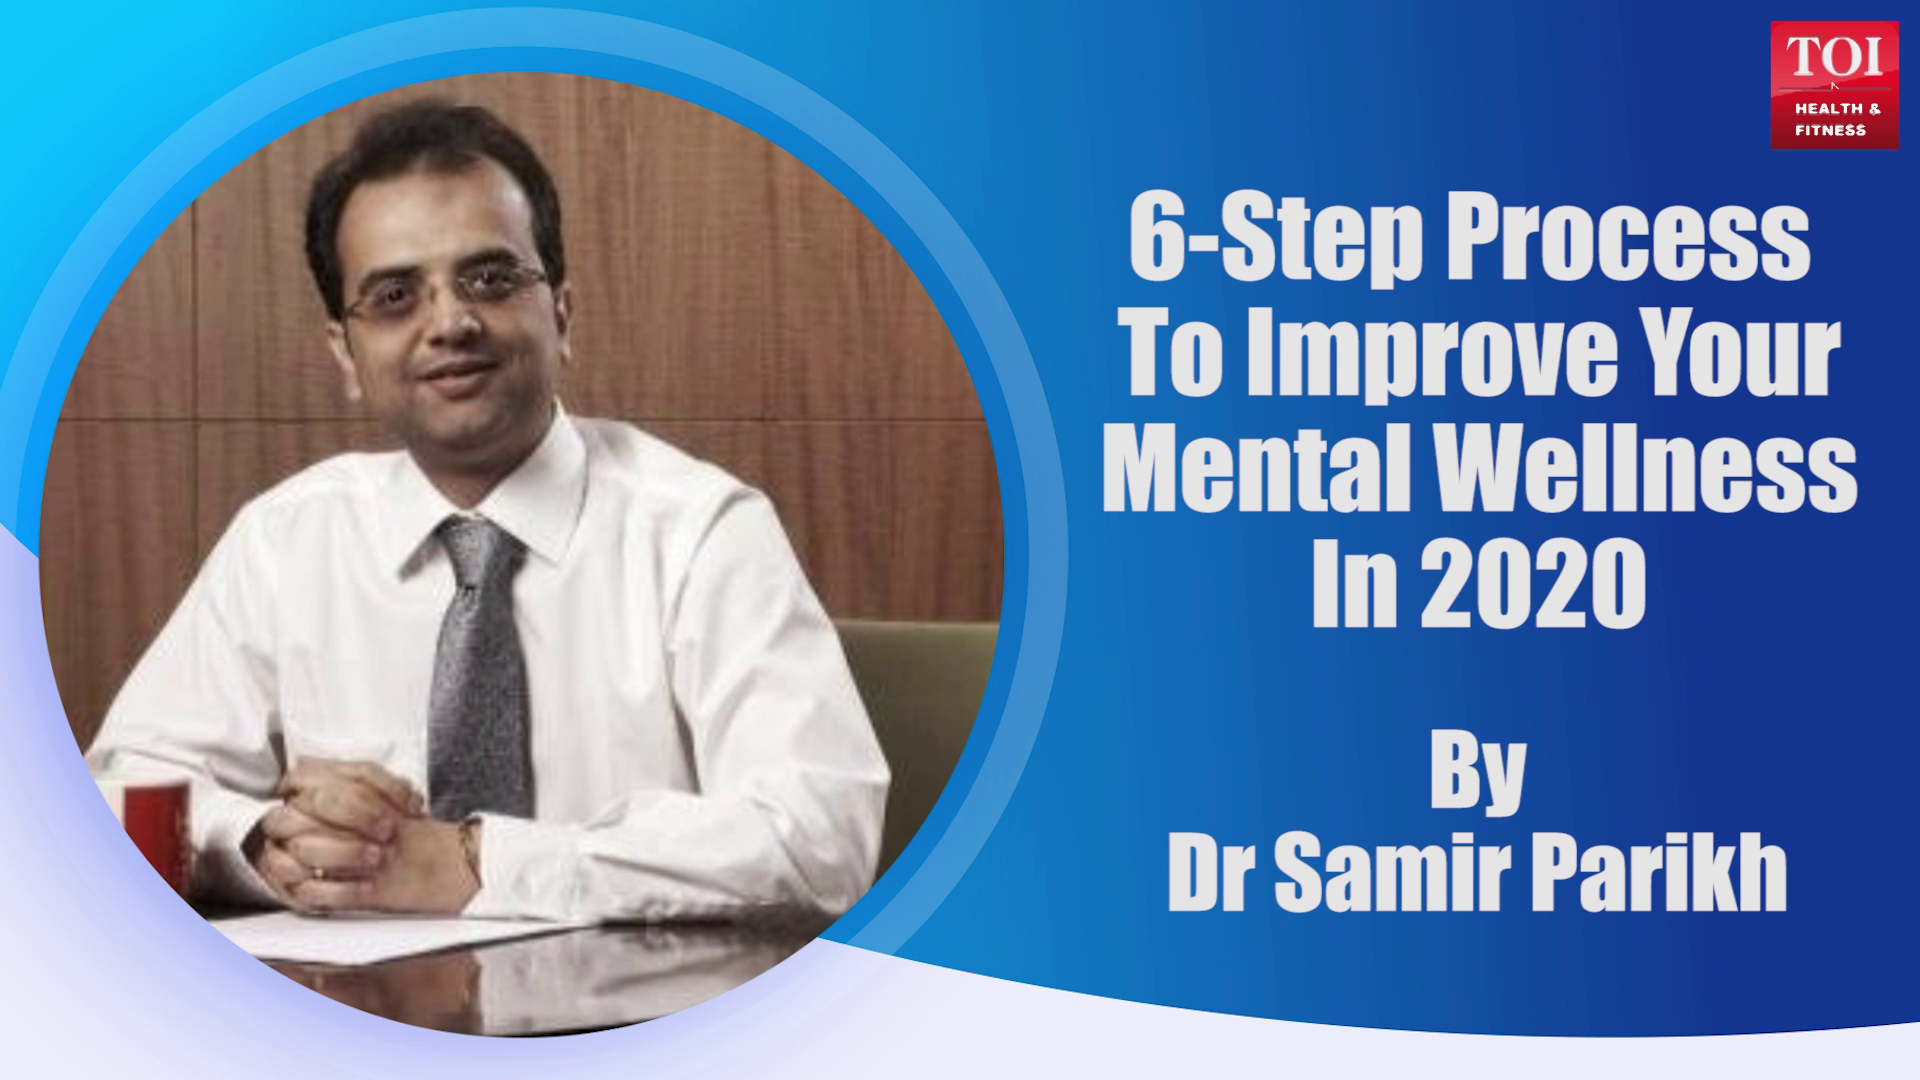 6-step-process-to-improve-your-mental-wellness-in-2020